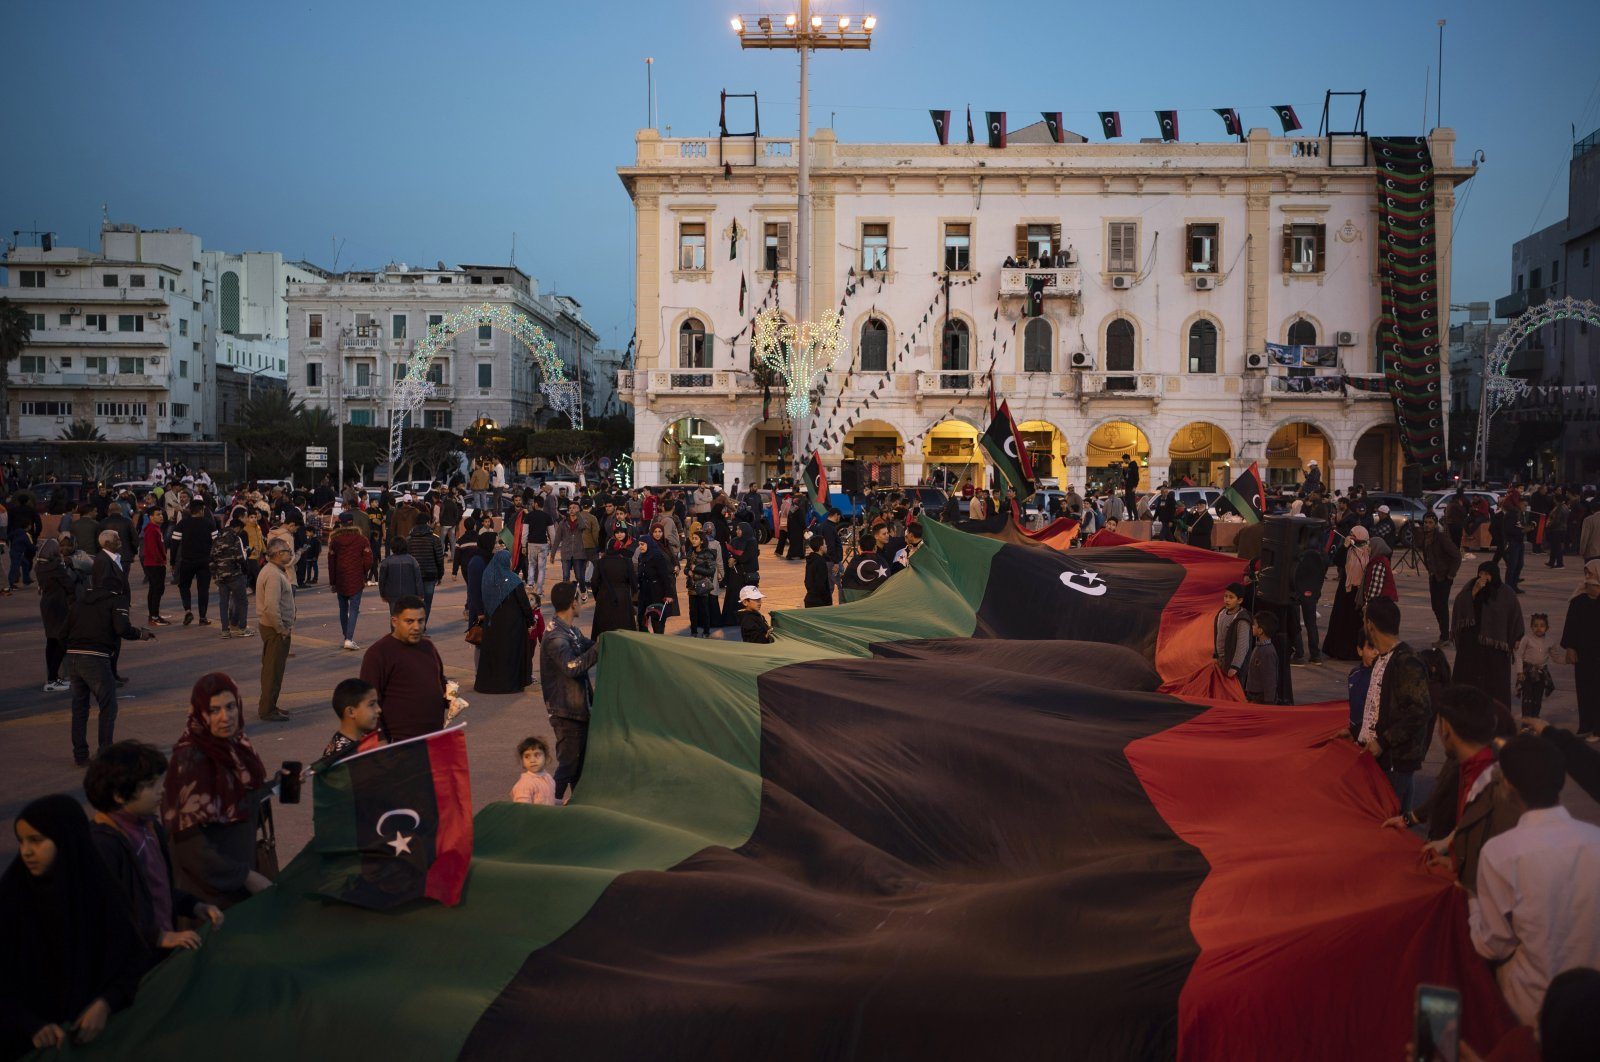 People carry a giant Libyan flag at the Martyrs' Square during a march commemorating the anniversary of protests against Moammar Gadhafi, Tripoli, Libya, Feb. 25, 2020. (AP Photo)